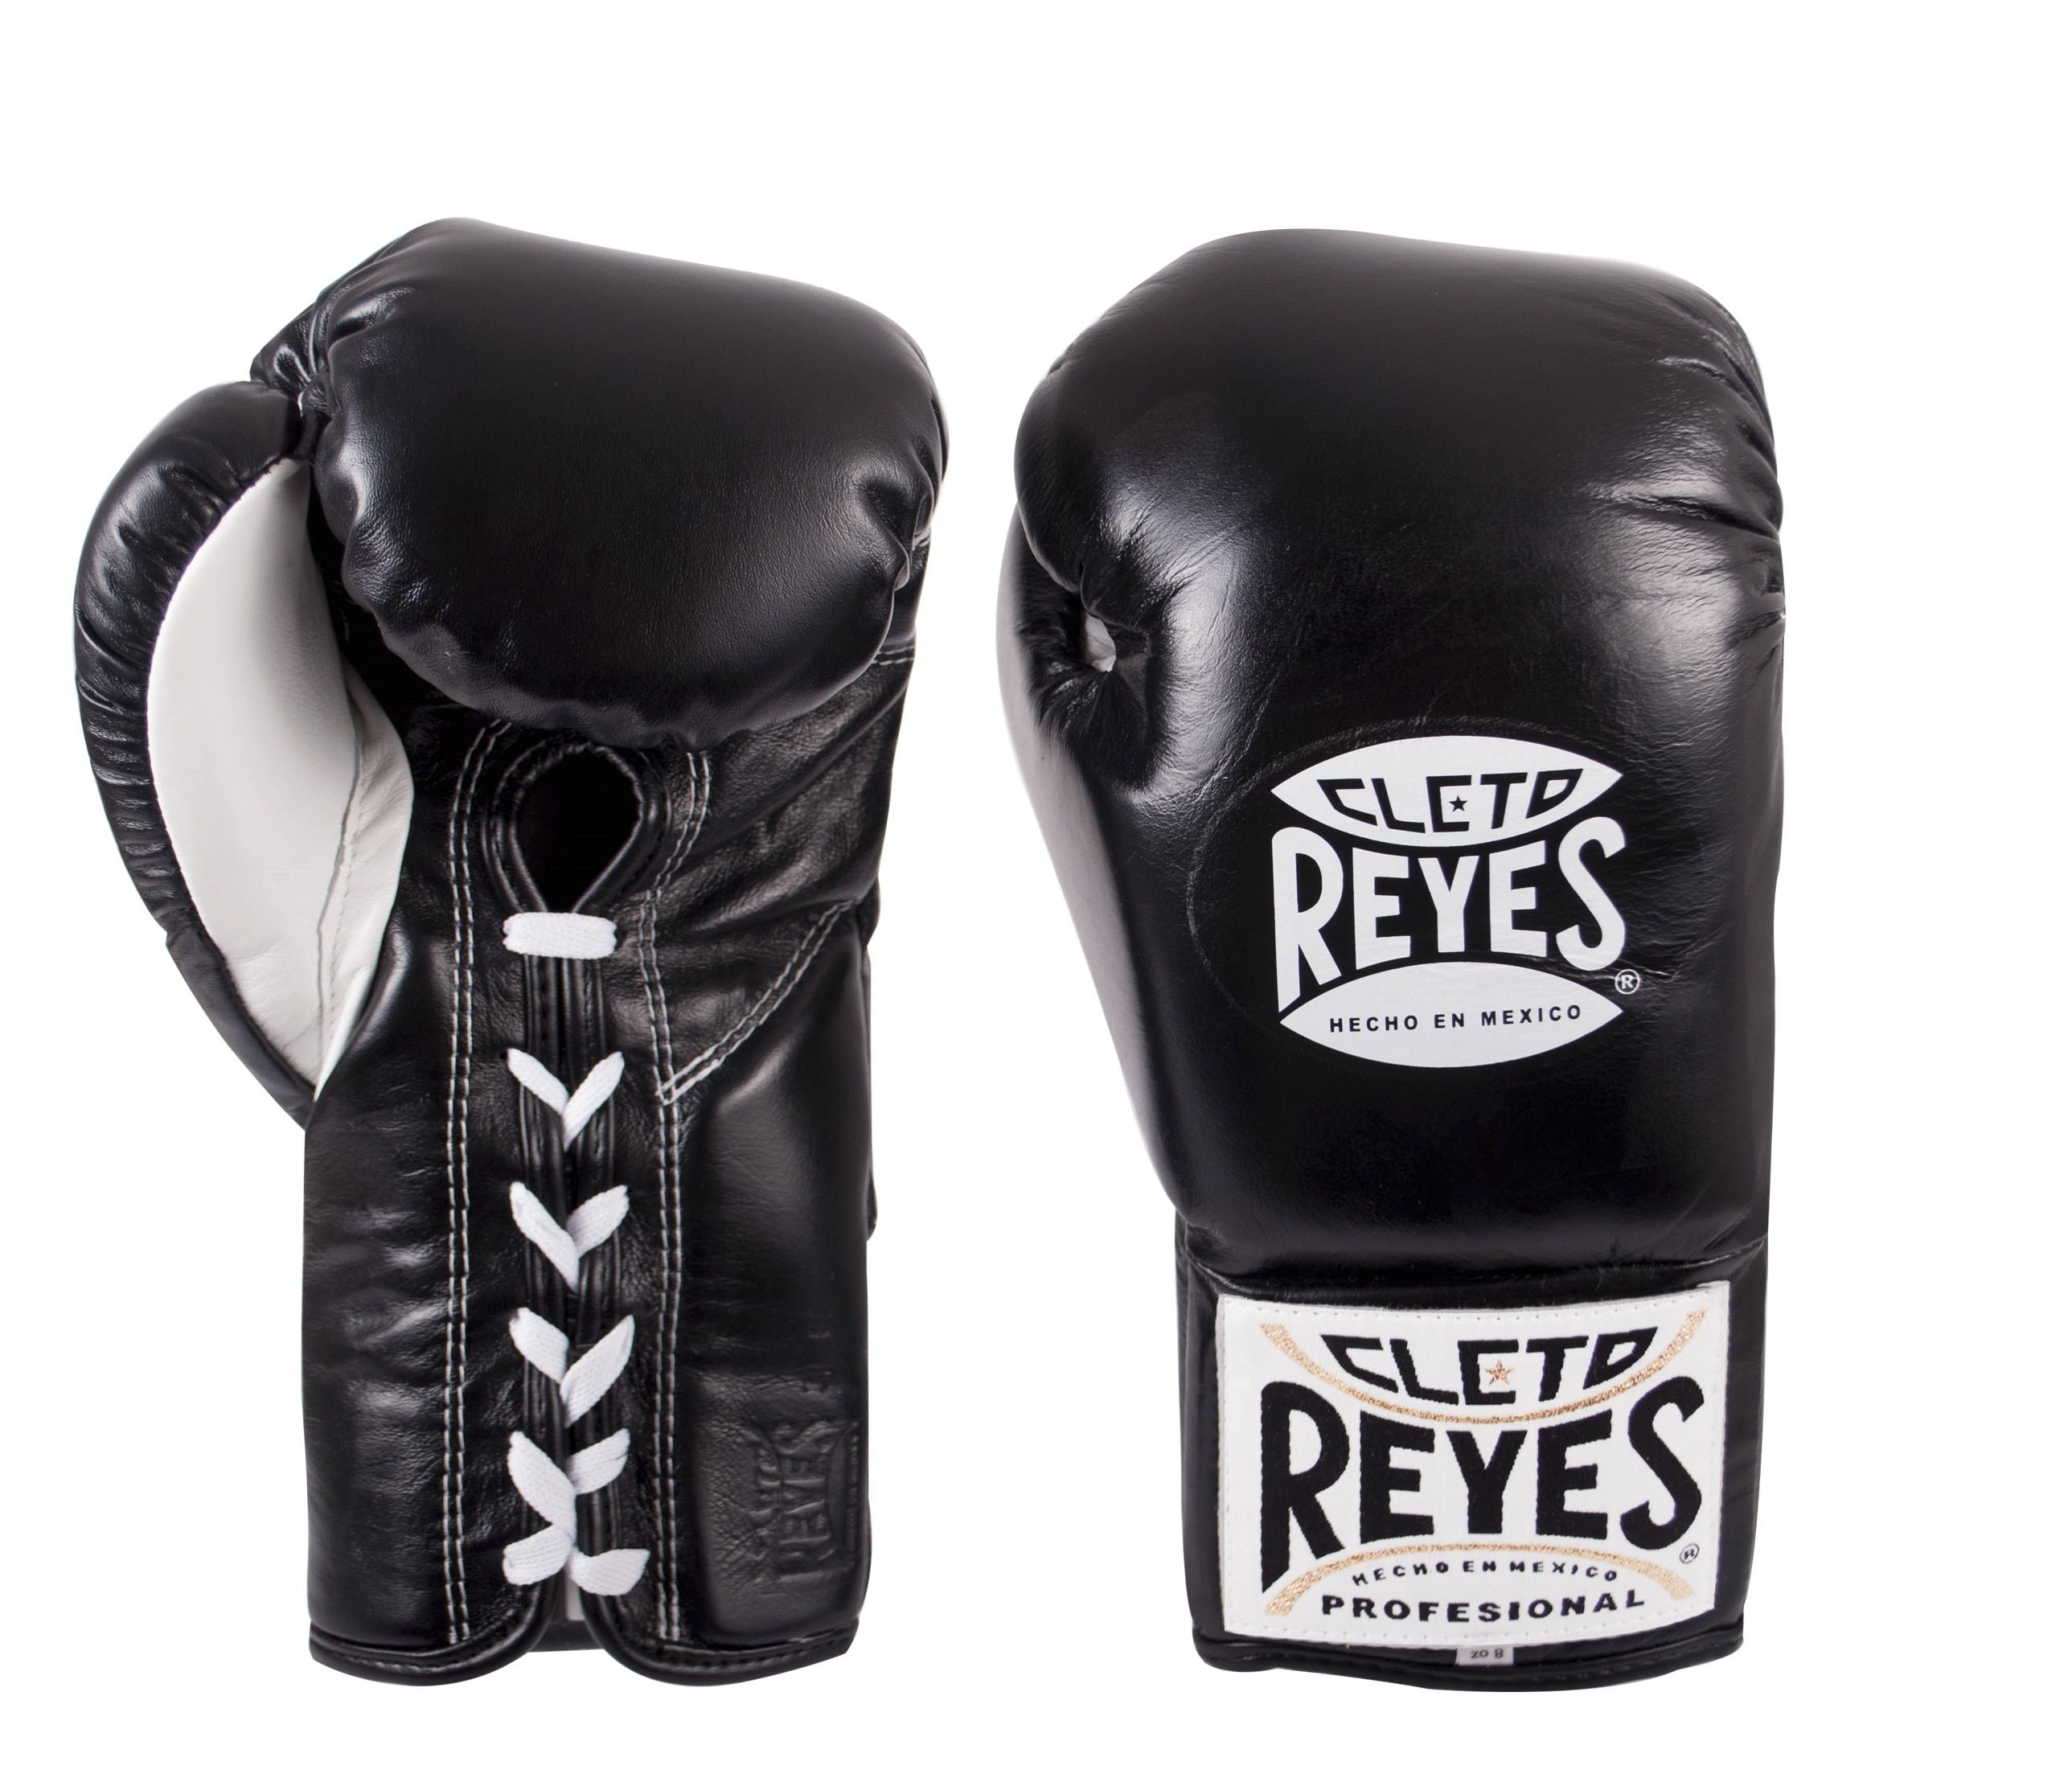 NEW CLETO REYES PROFESSIONAL BOXING GLOVES LACE WHITE LEATHER